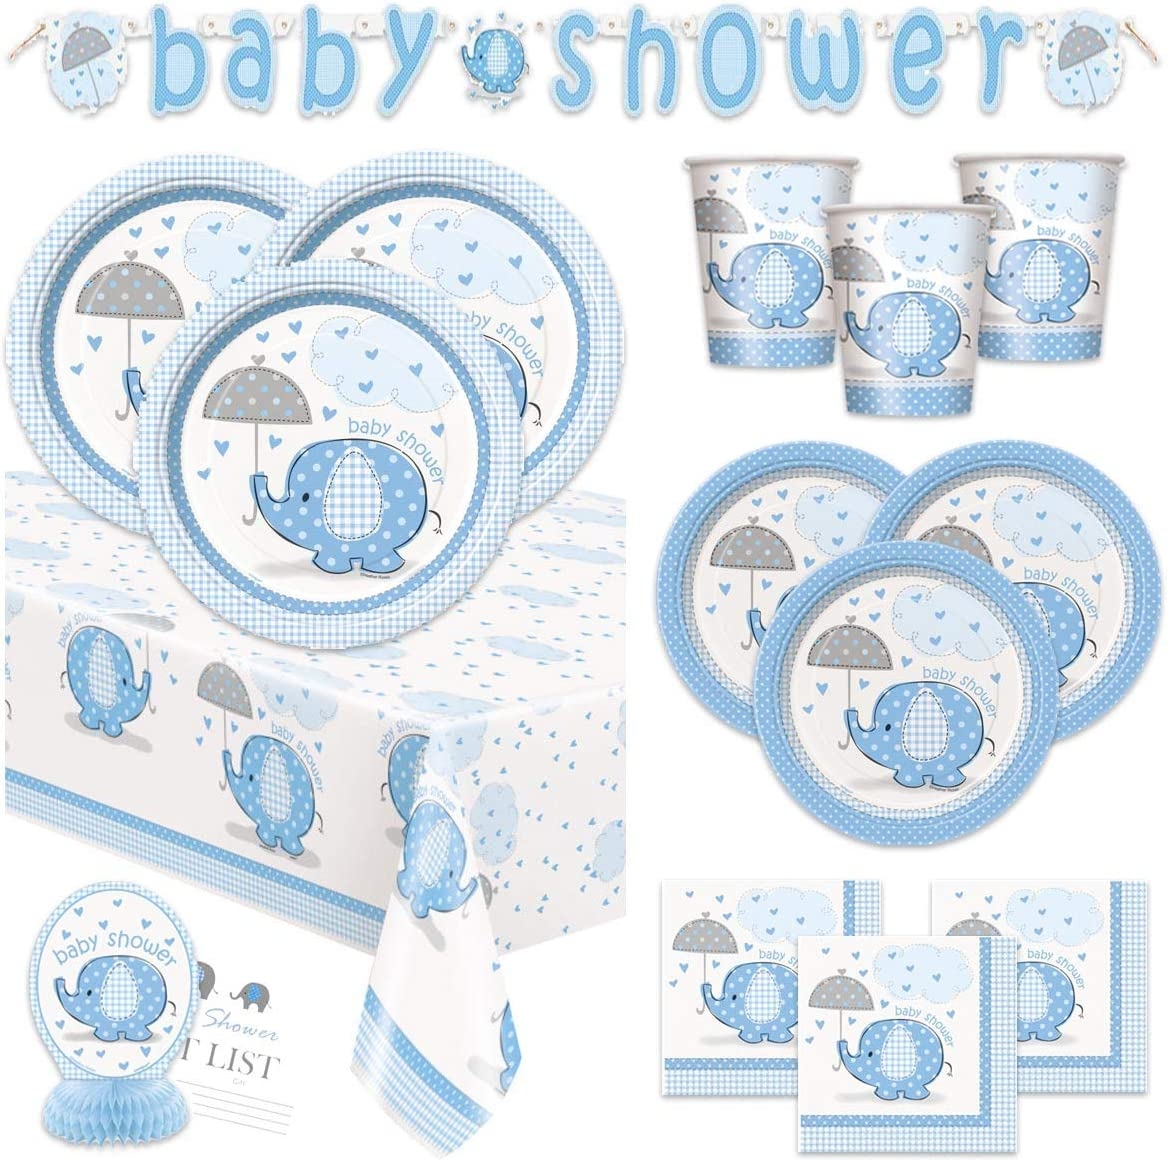 Boy Baby Shower Party Supplies Set - Blue Elephant Design Includes Plates, Cups, Napkins, Tablecover, Banner Decorations (Deluxe - Serves 16)